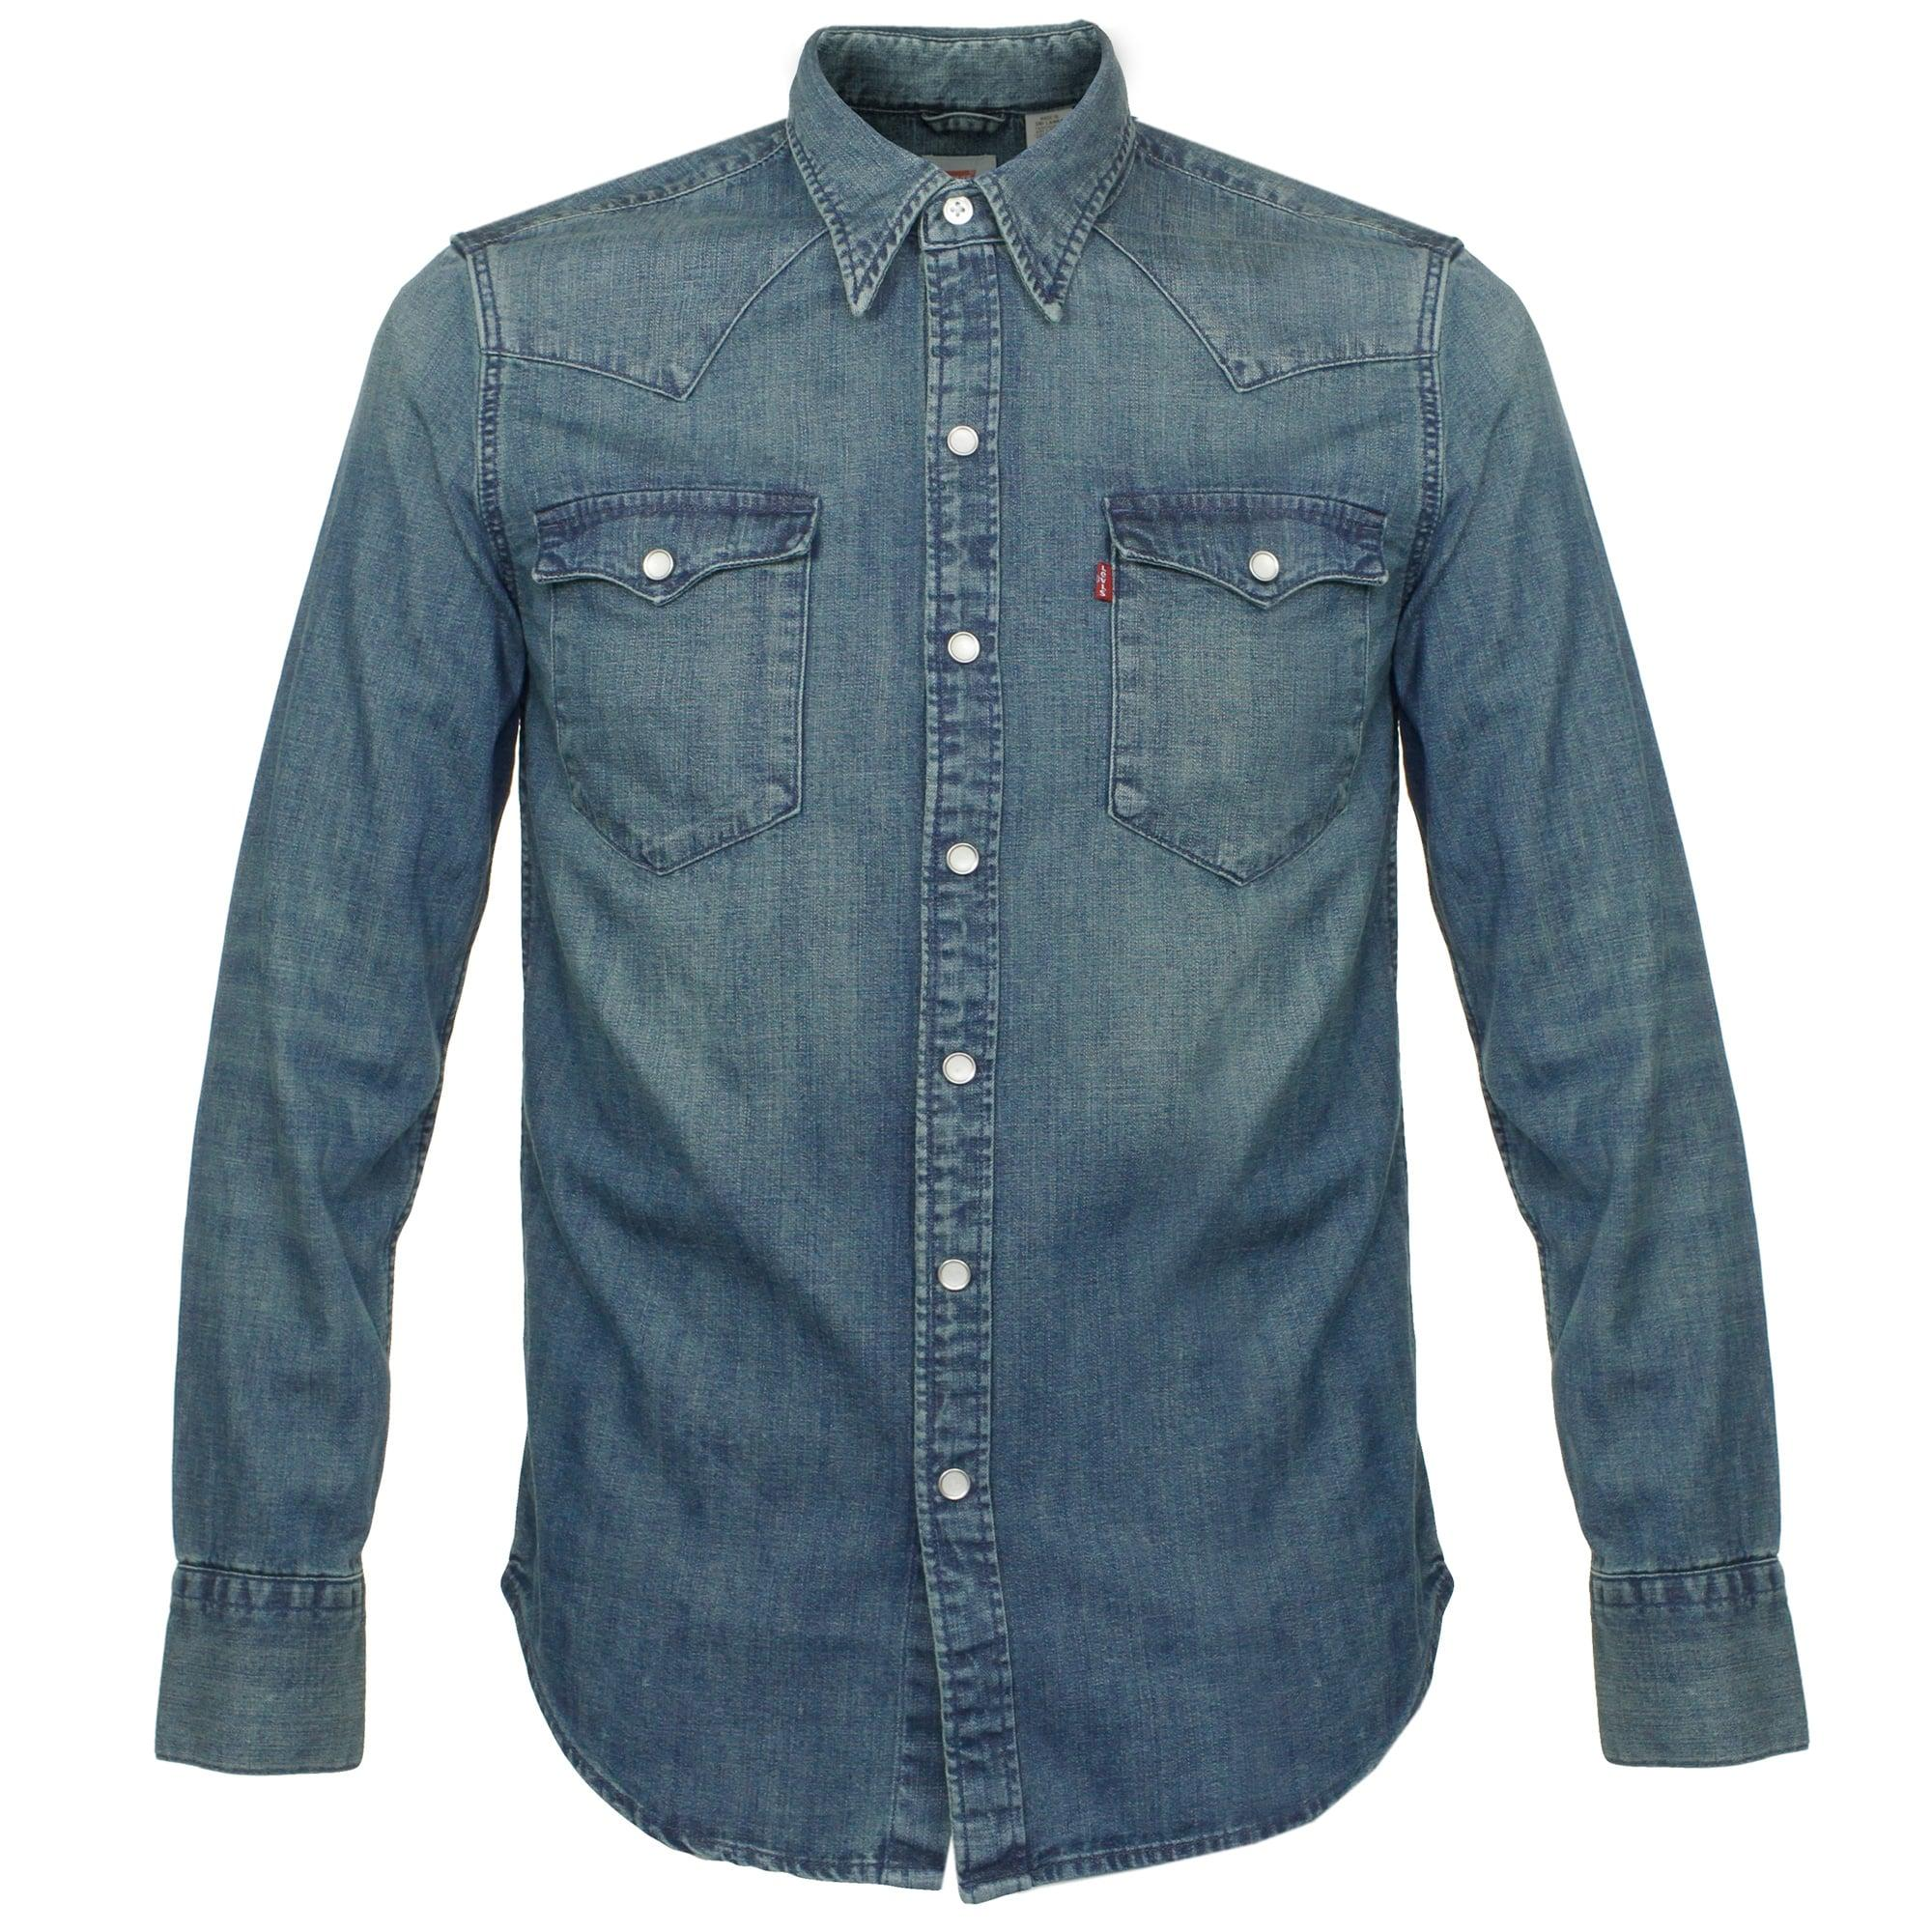 Guess Denim Shirt Men